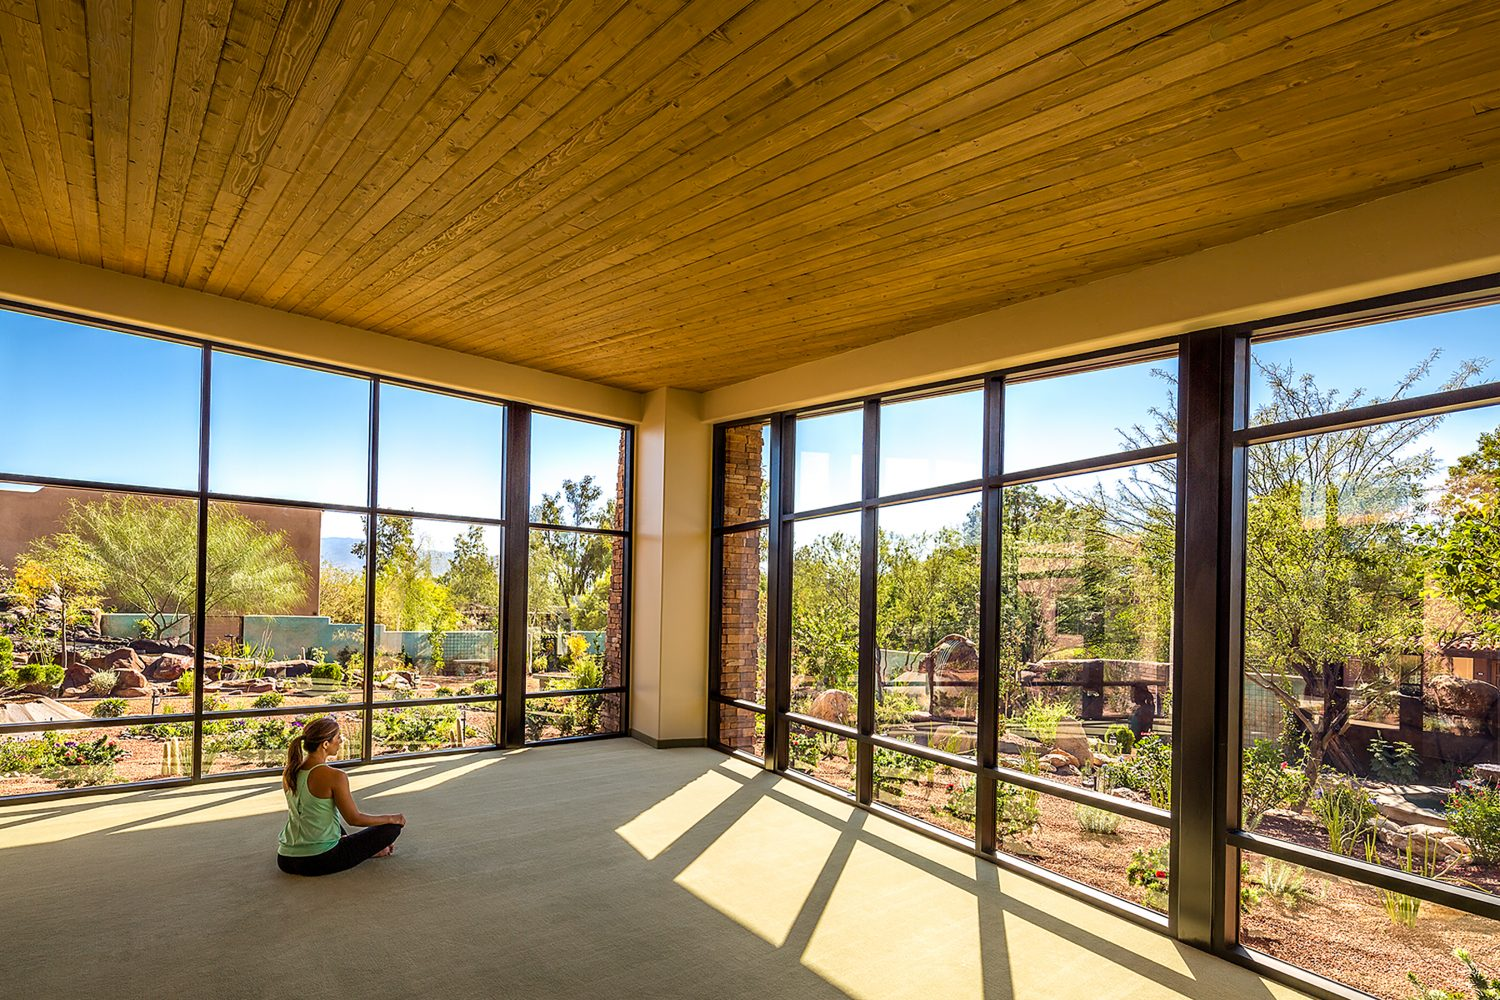 HANDOUT IMAGE: Interior of the Wellness Center at Canyon Ranch Resort in Tucson, Arizona